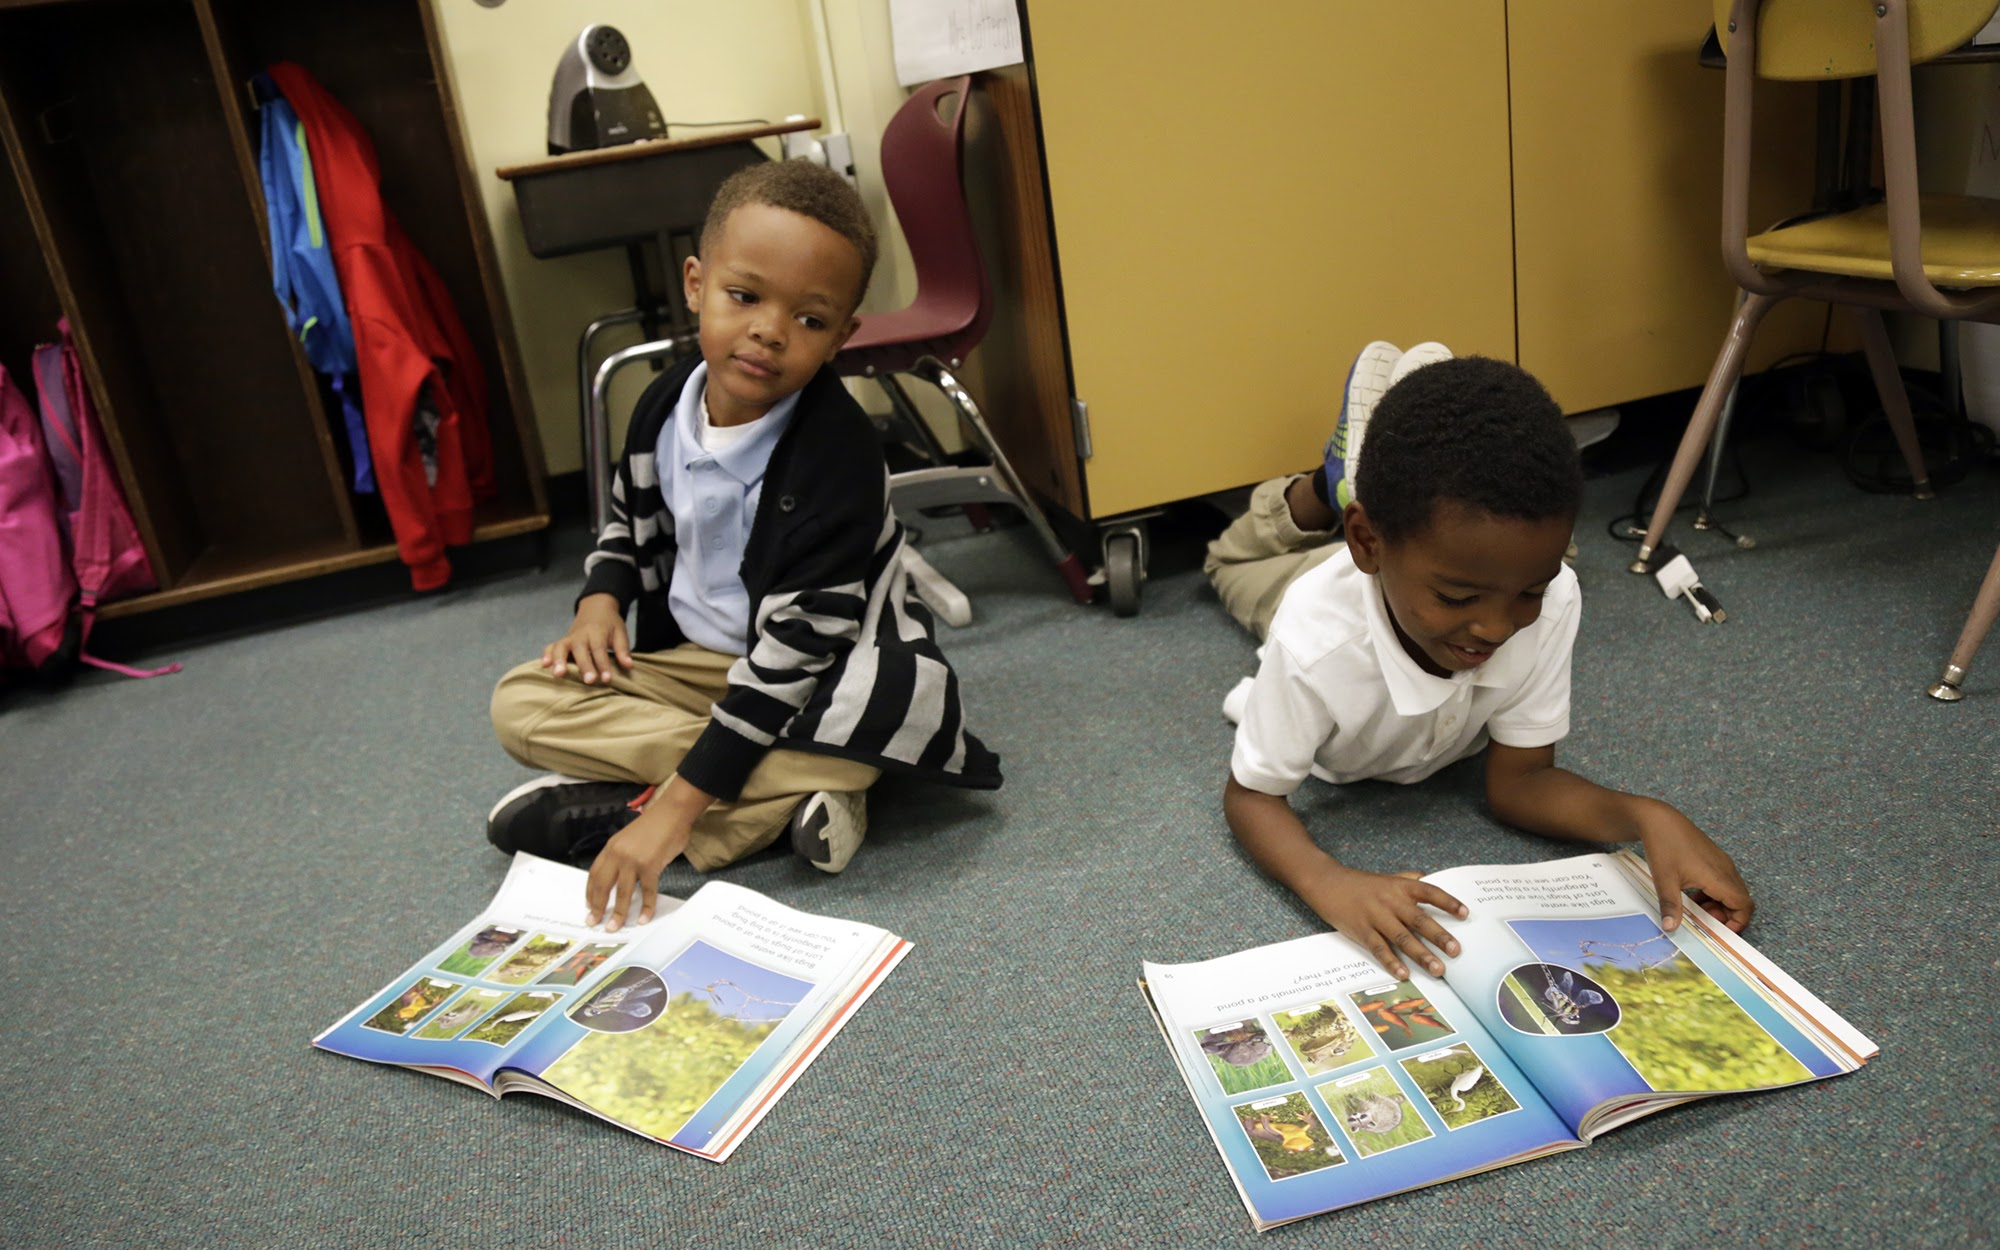 Barrett Elementary School first grade students Eion Cook, 6, (left) and Christian Page, 6, partner read books about animal habitats on Nov. 1, 2017. (Photo by Ryan Loew/PublicSource)